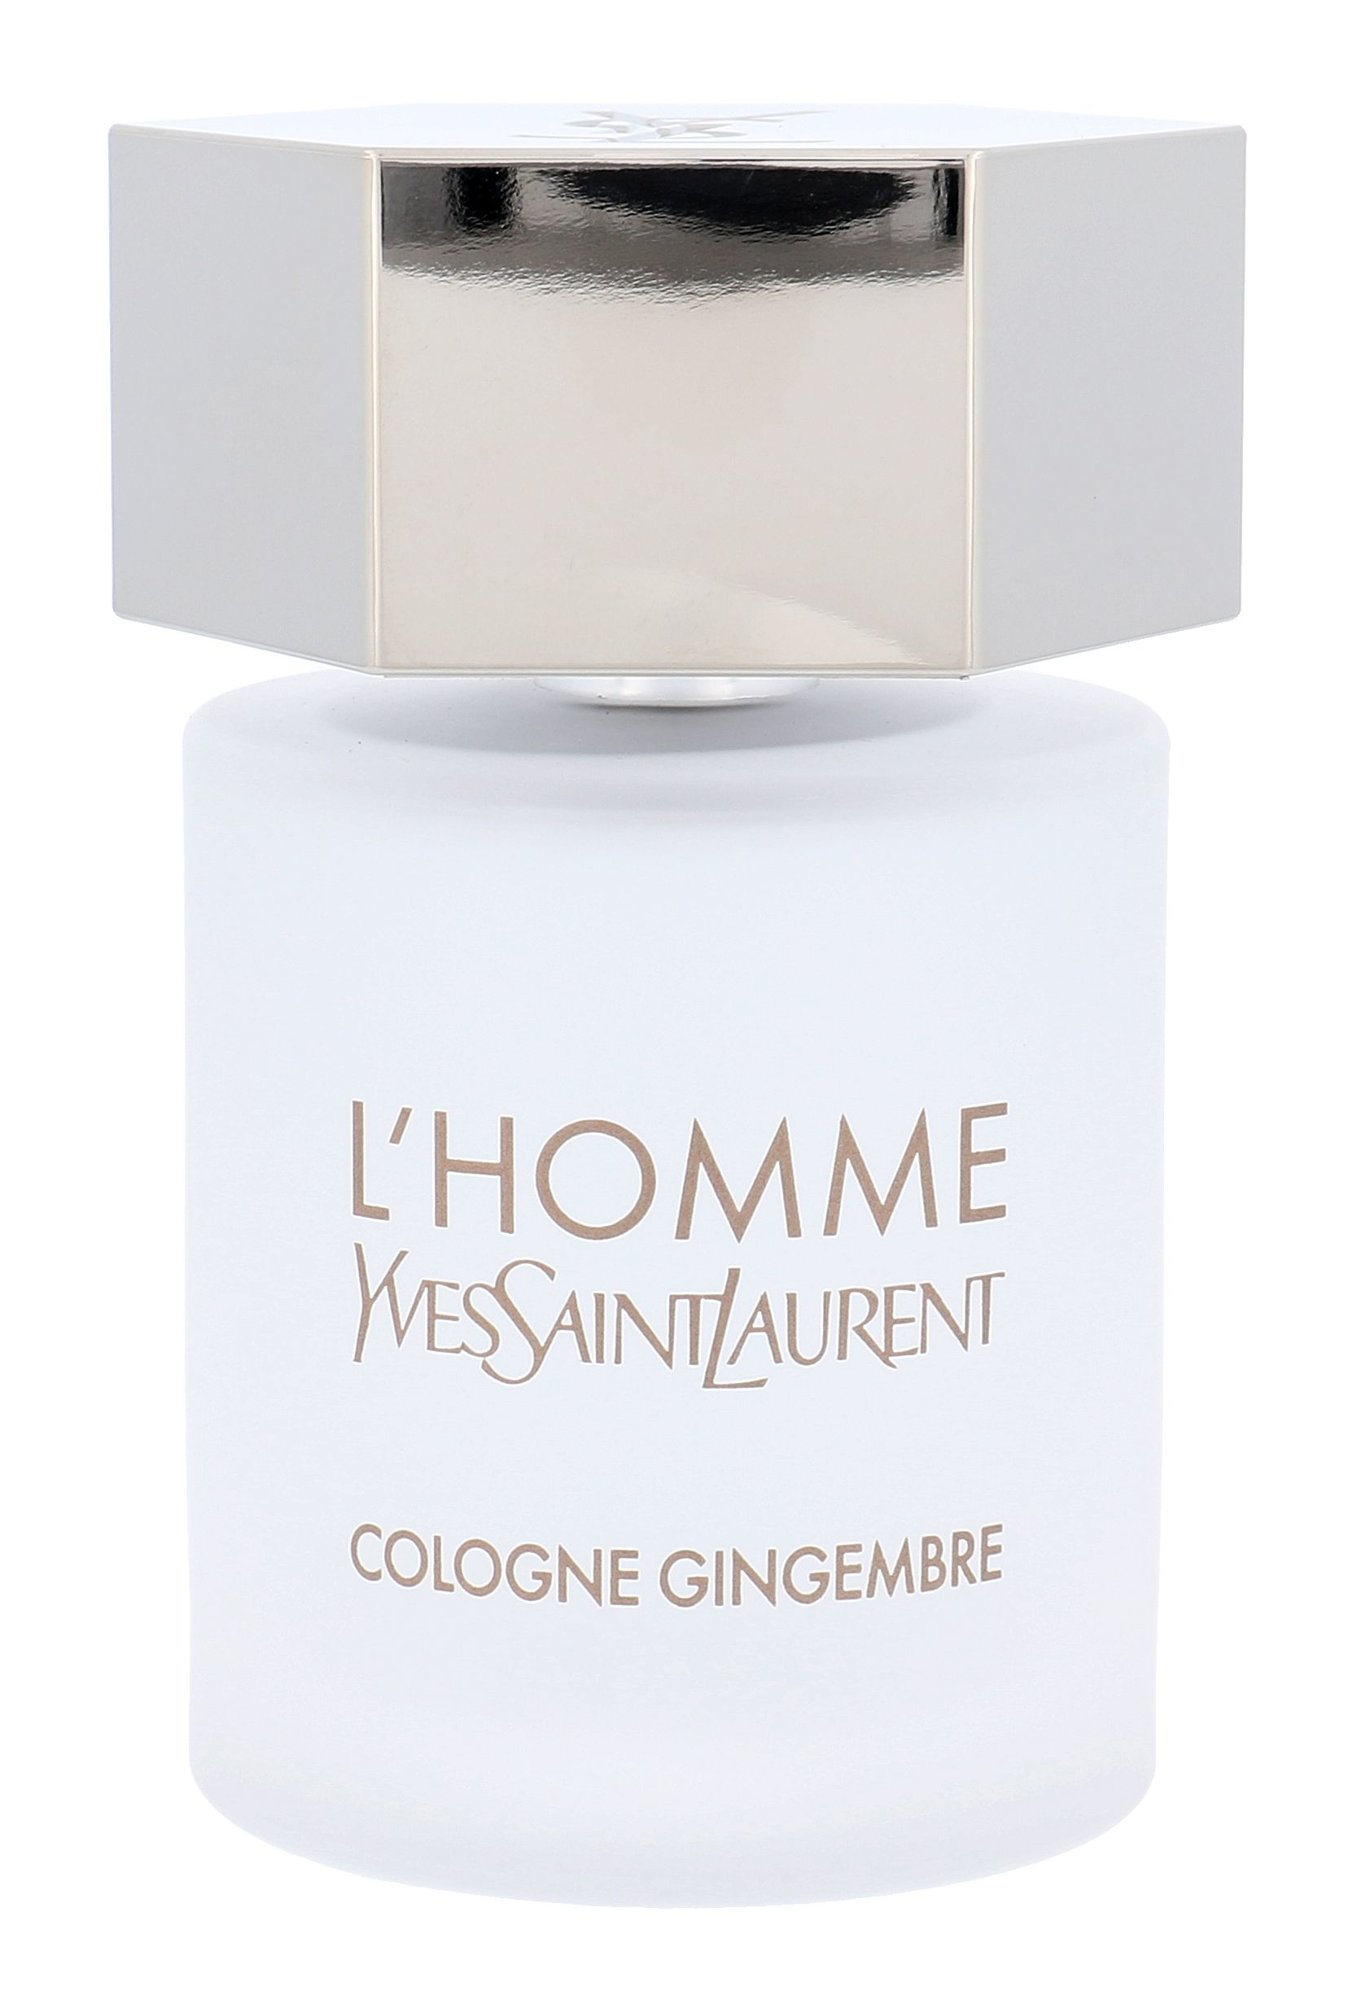 Yves Saint Laurent L´Homme Cologne Gingembre Cologne 100ml